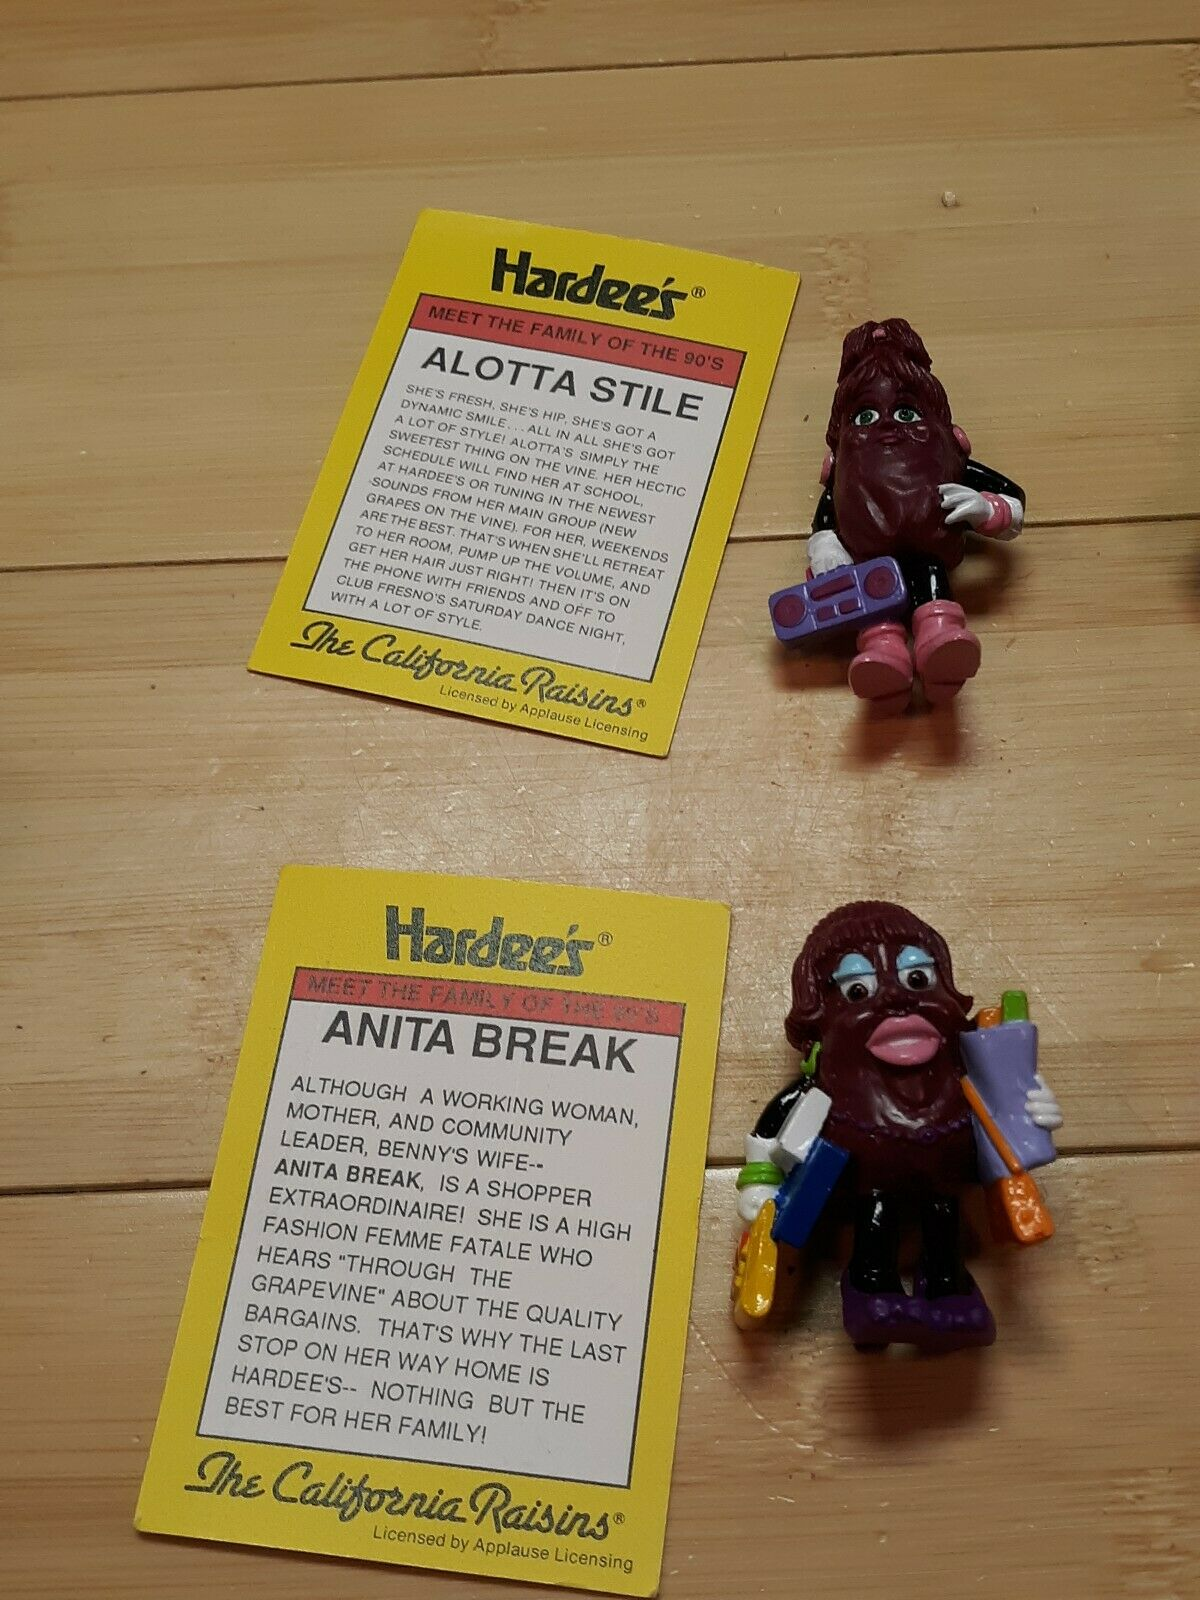 California California California Raisins Figures Trading Cards 90's Hardee's Promo Toys Complete Set 35d42a